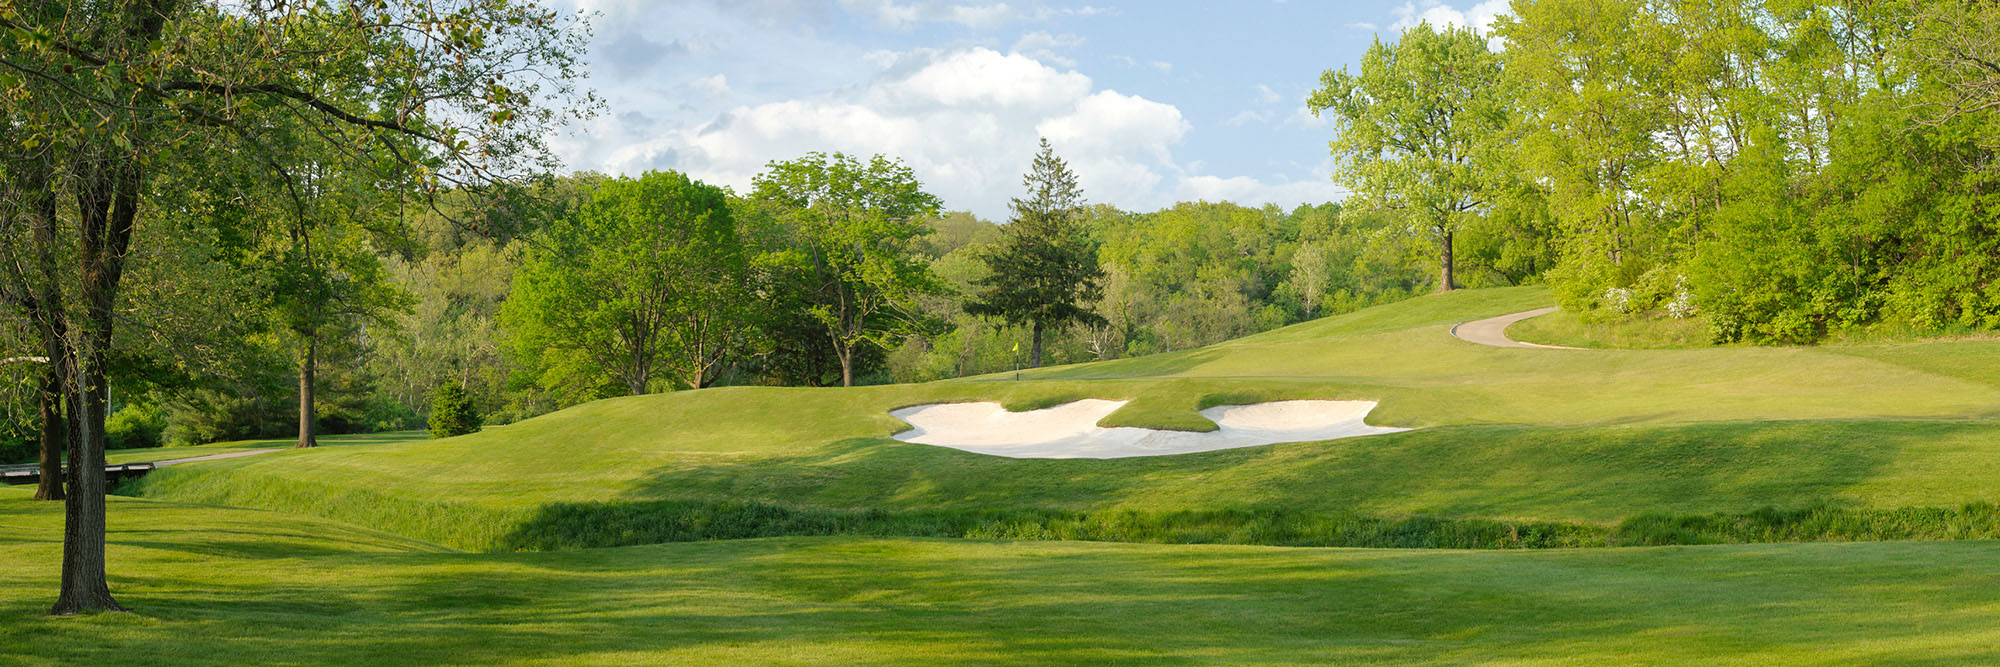 Golf Course Image - Forest Hills Country Club No. 12